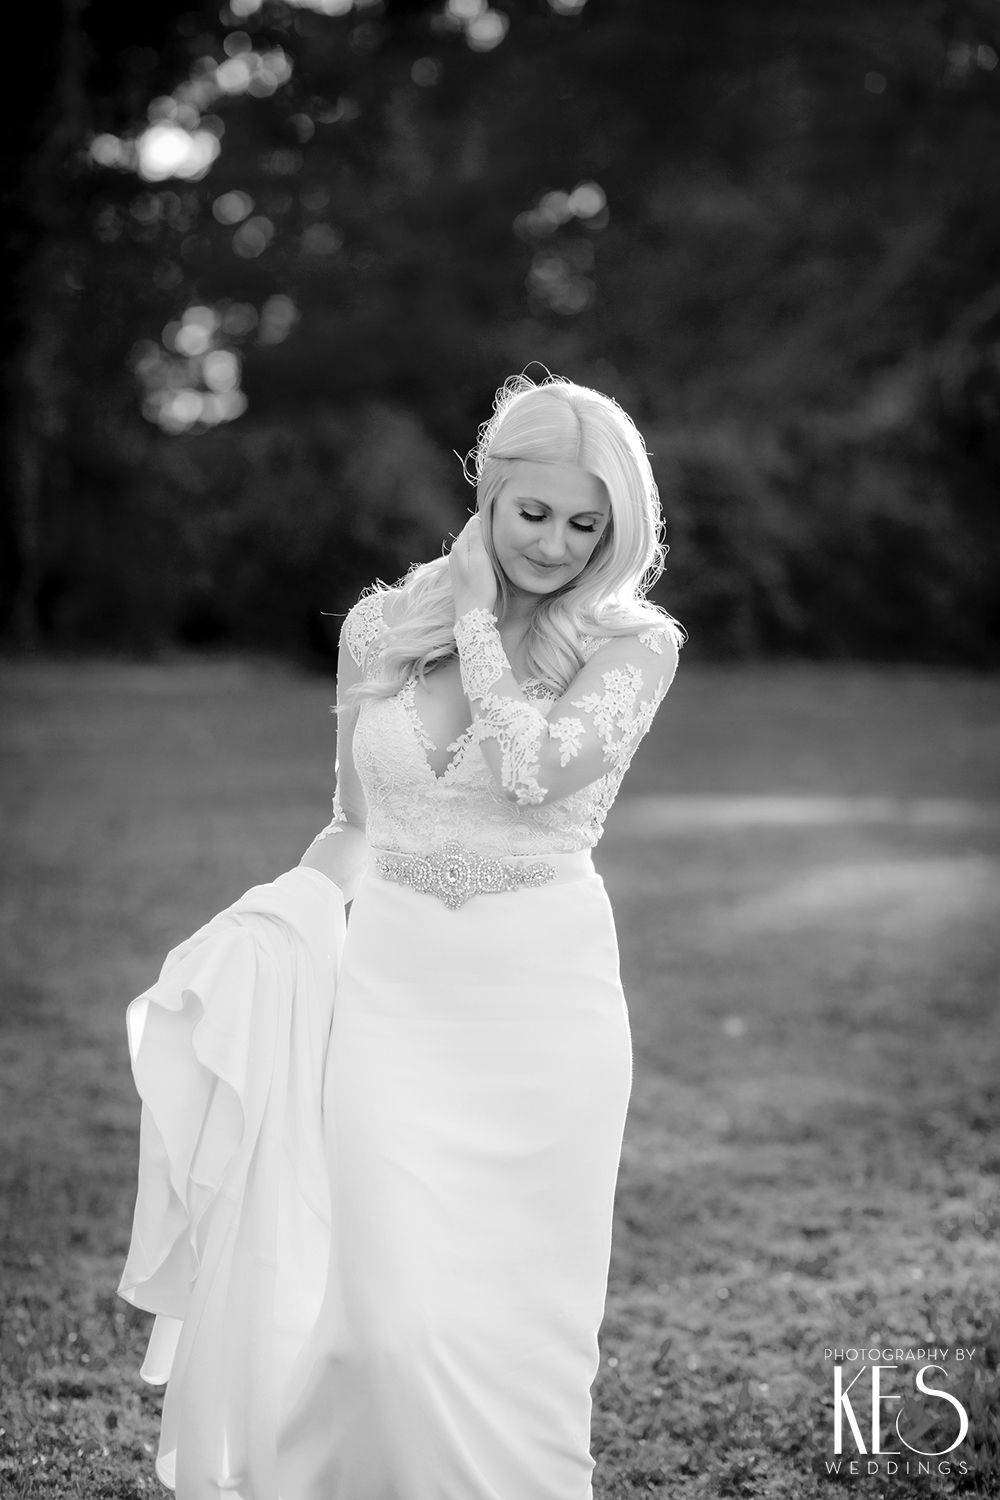 Marlsgate_Bridals_KES_Weddings_26.JPG